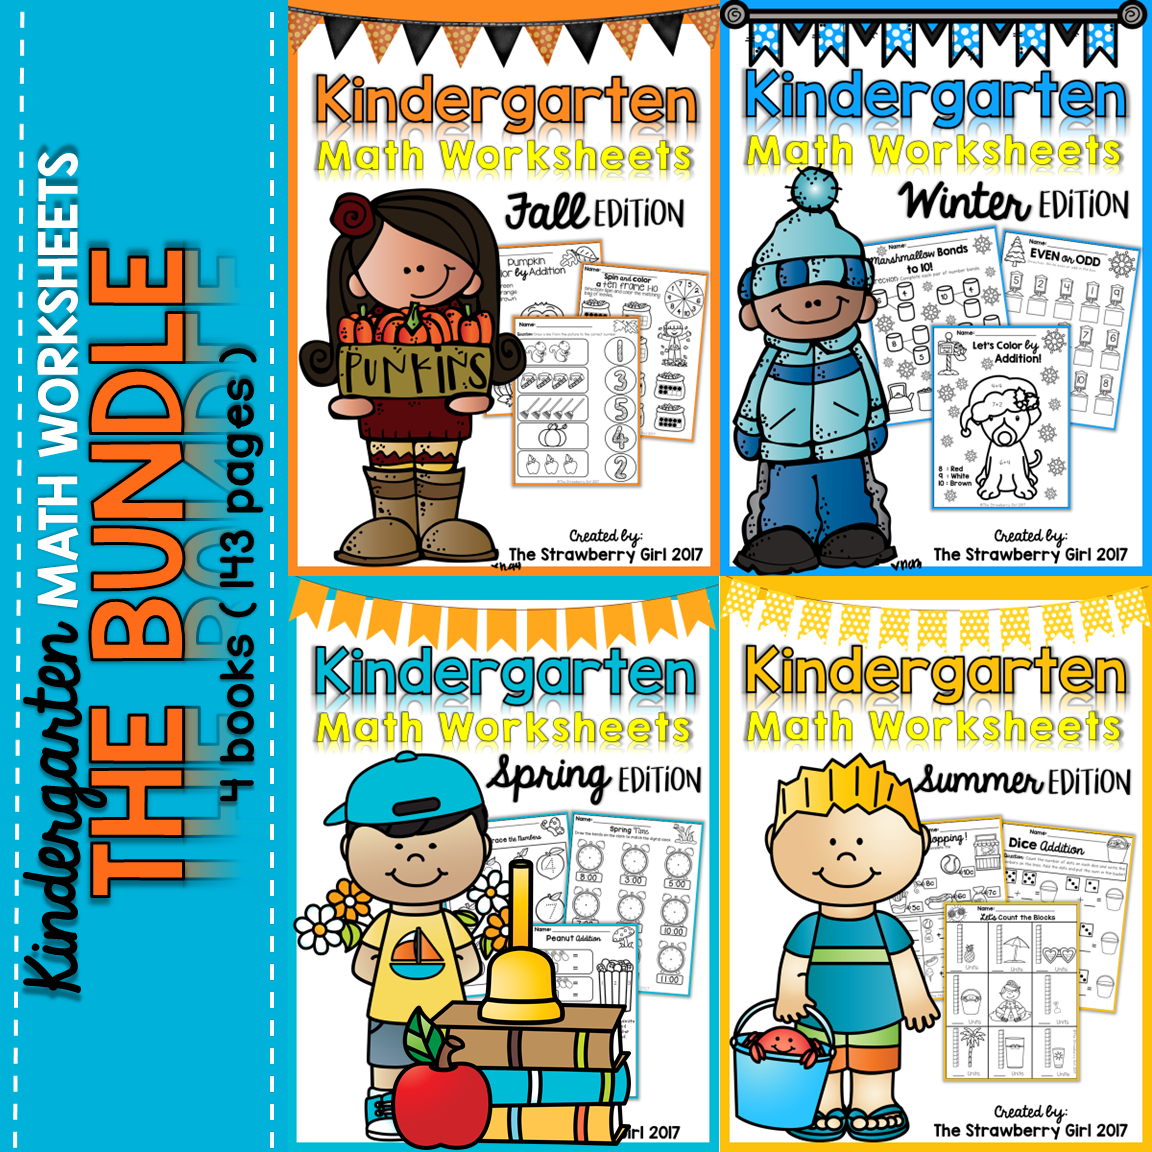 Kindergarten Math Worksheets - Bundle | Fun worksheets, Math ...